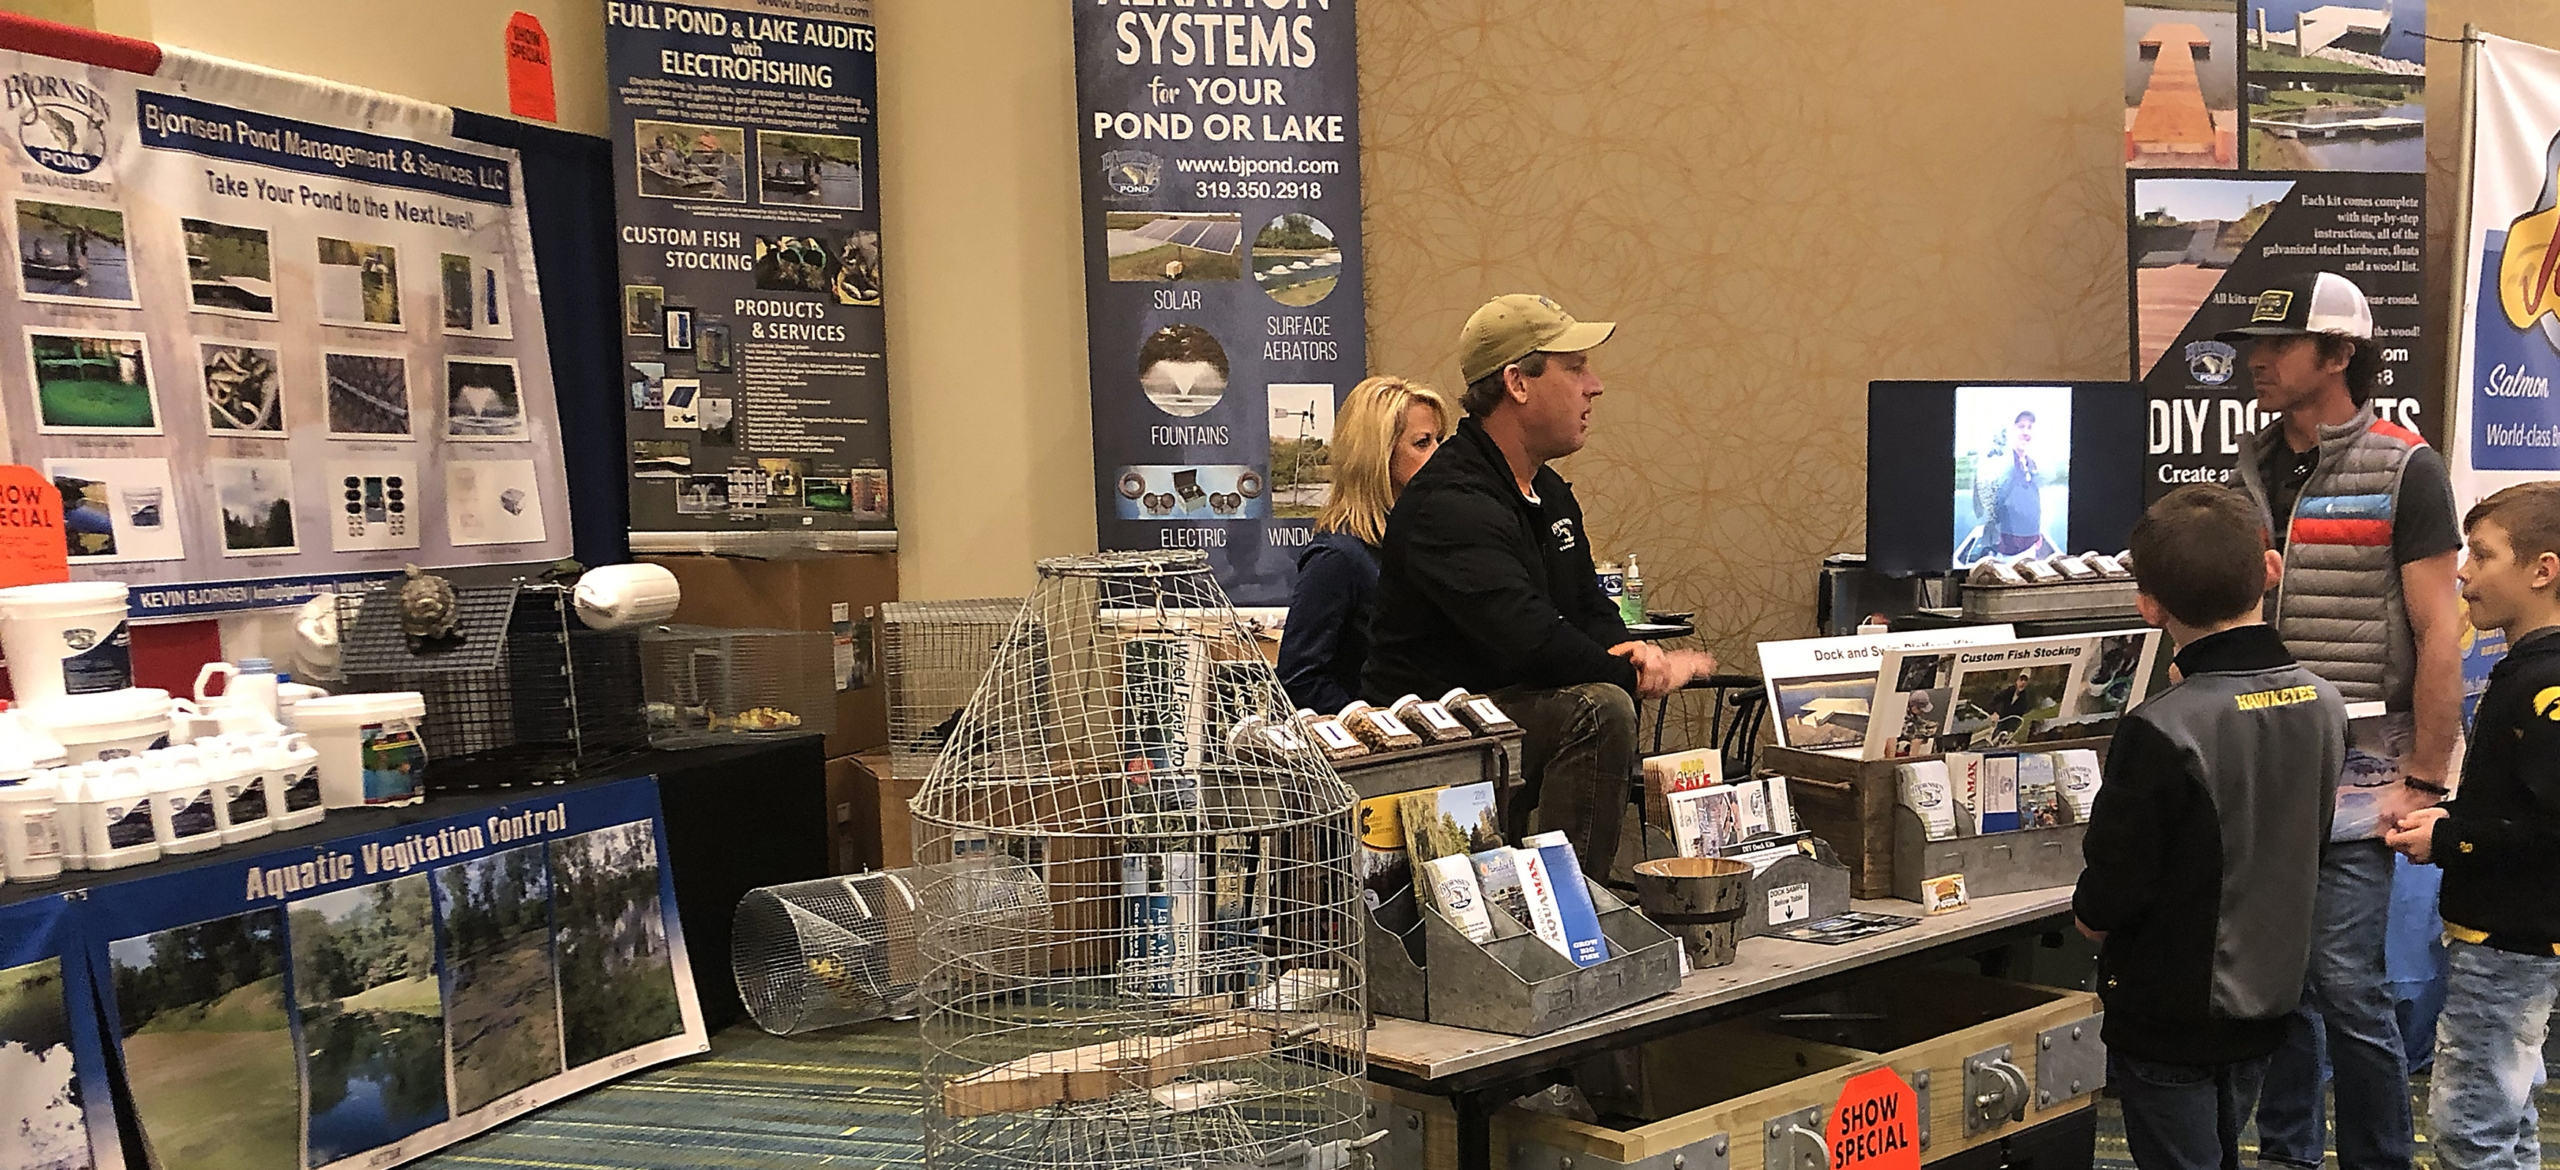 Visit Us at the 2020 Iowa Deer Classic Show and Save!